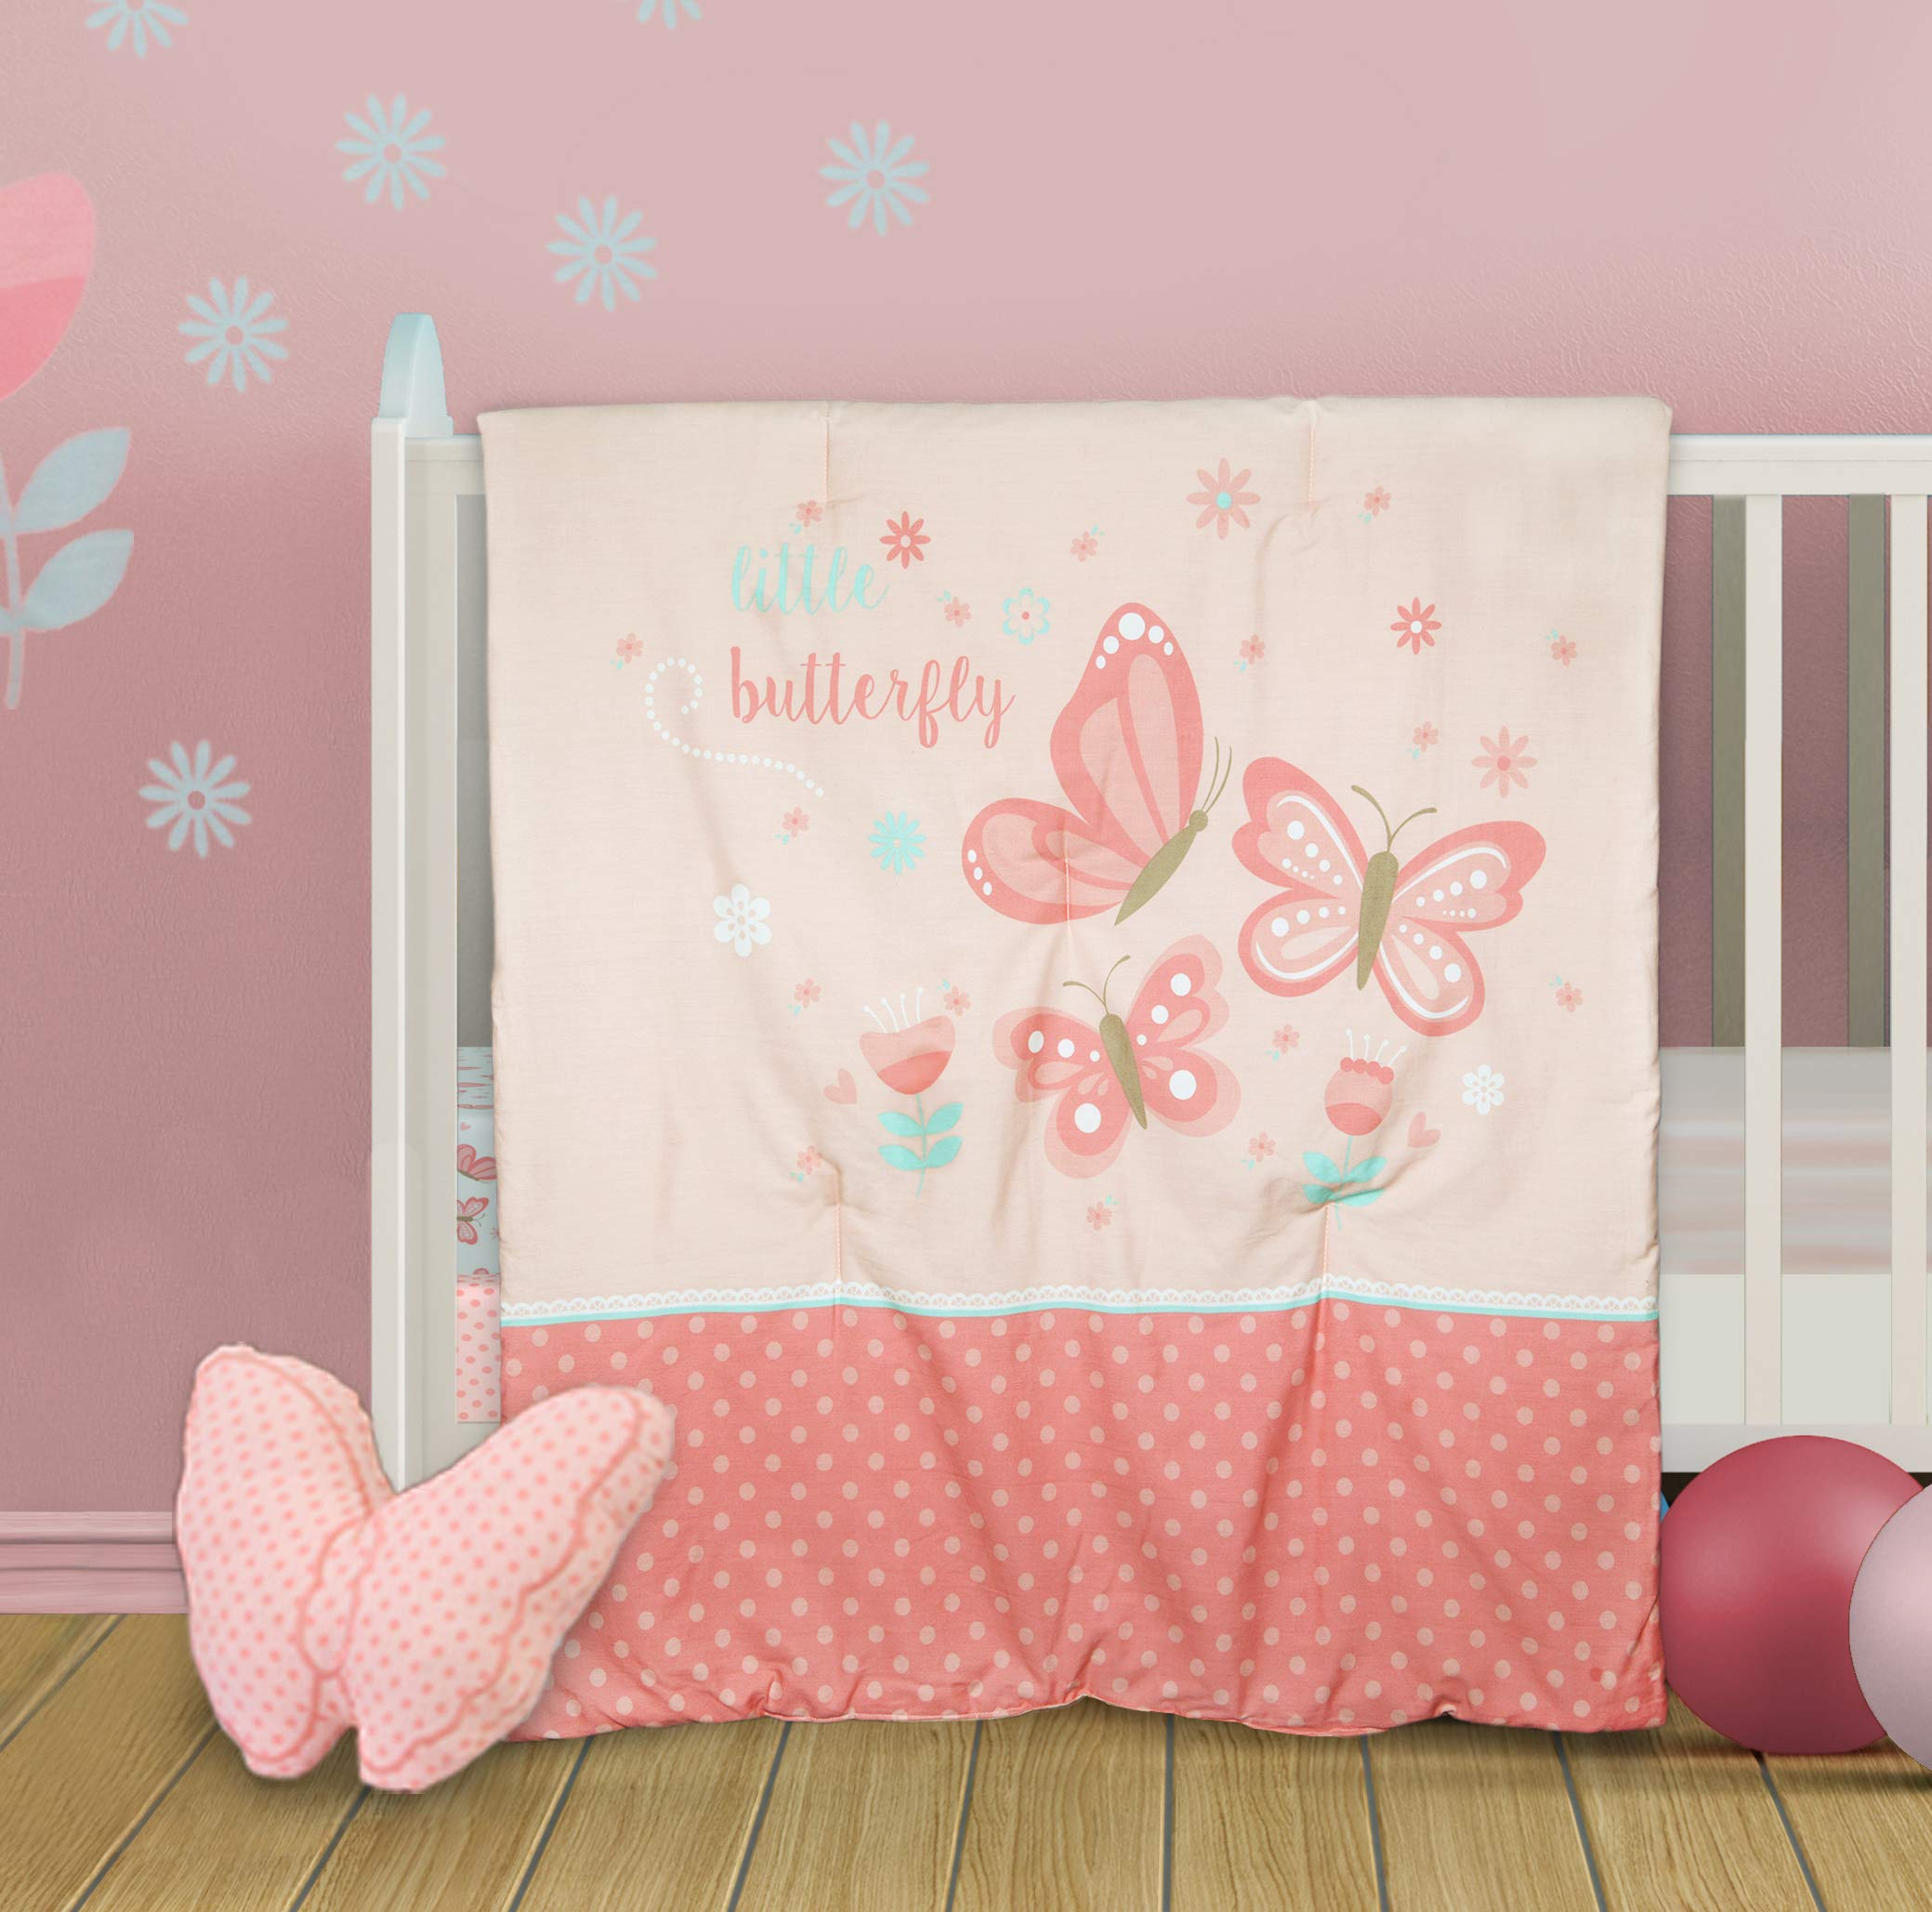 Fits Standard Crib Mattress Wildkin Microfiber Fitted Crib Sheet For Infant Olive Kids Butterfly Garden Includes One Fitted Crib Sheet Measures 52 x 28 Inches Toddler Boys and Girls BPA-free